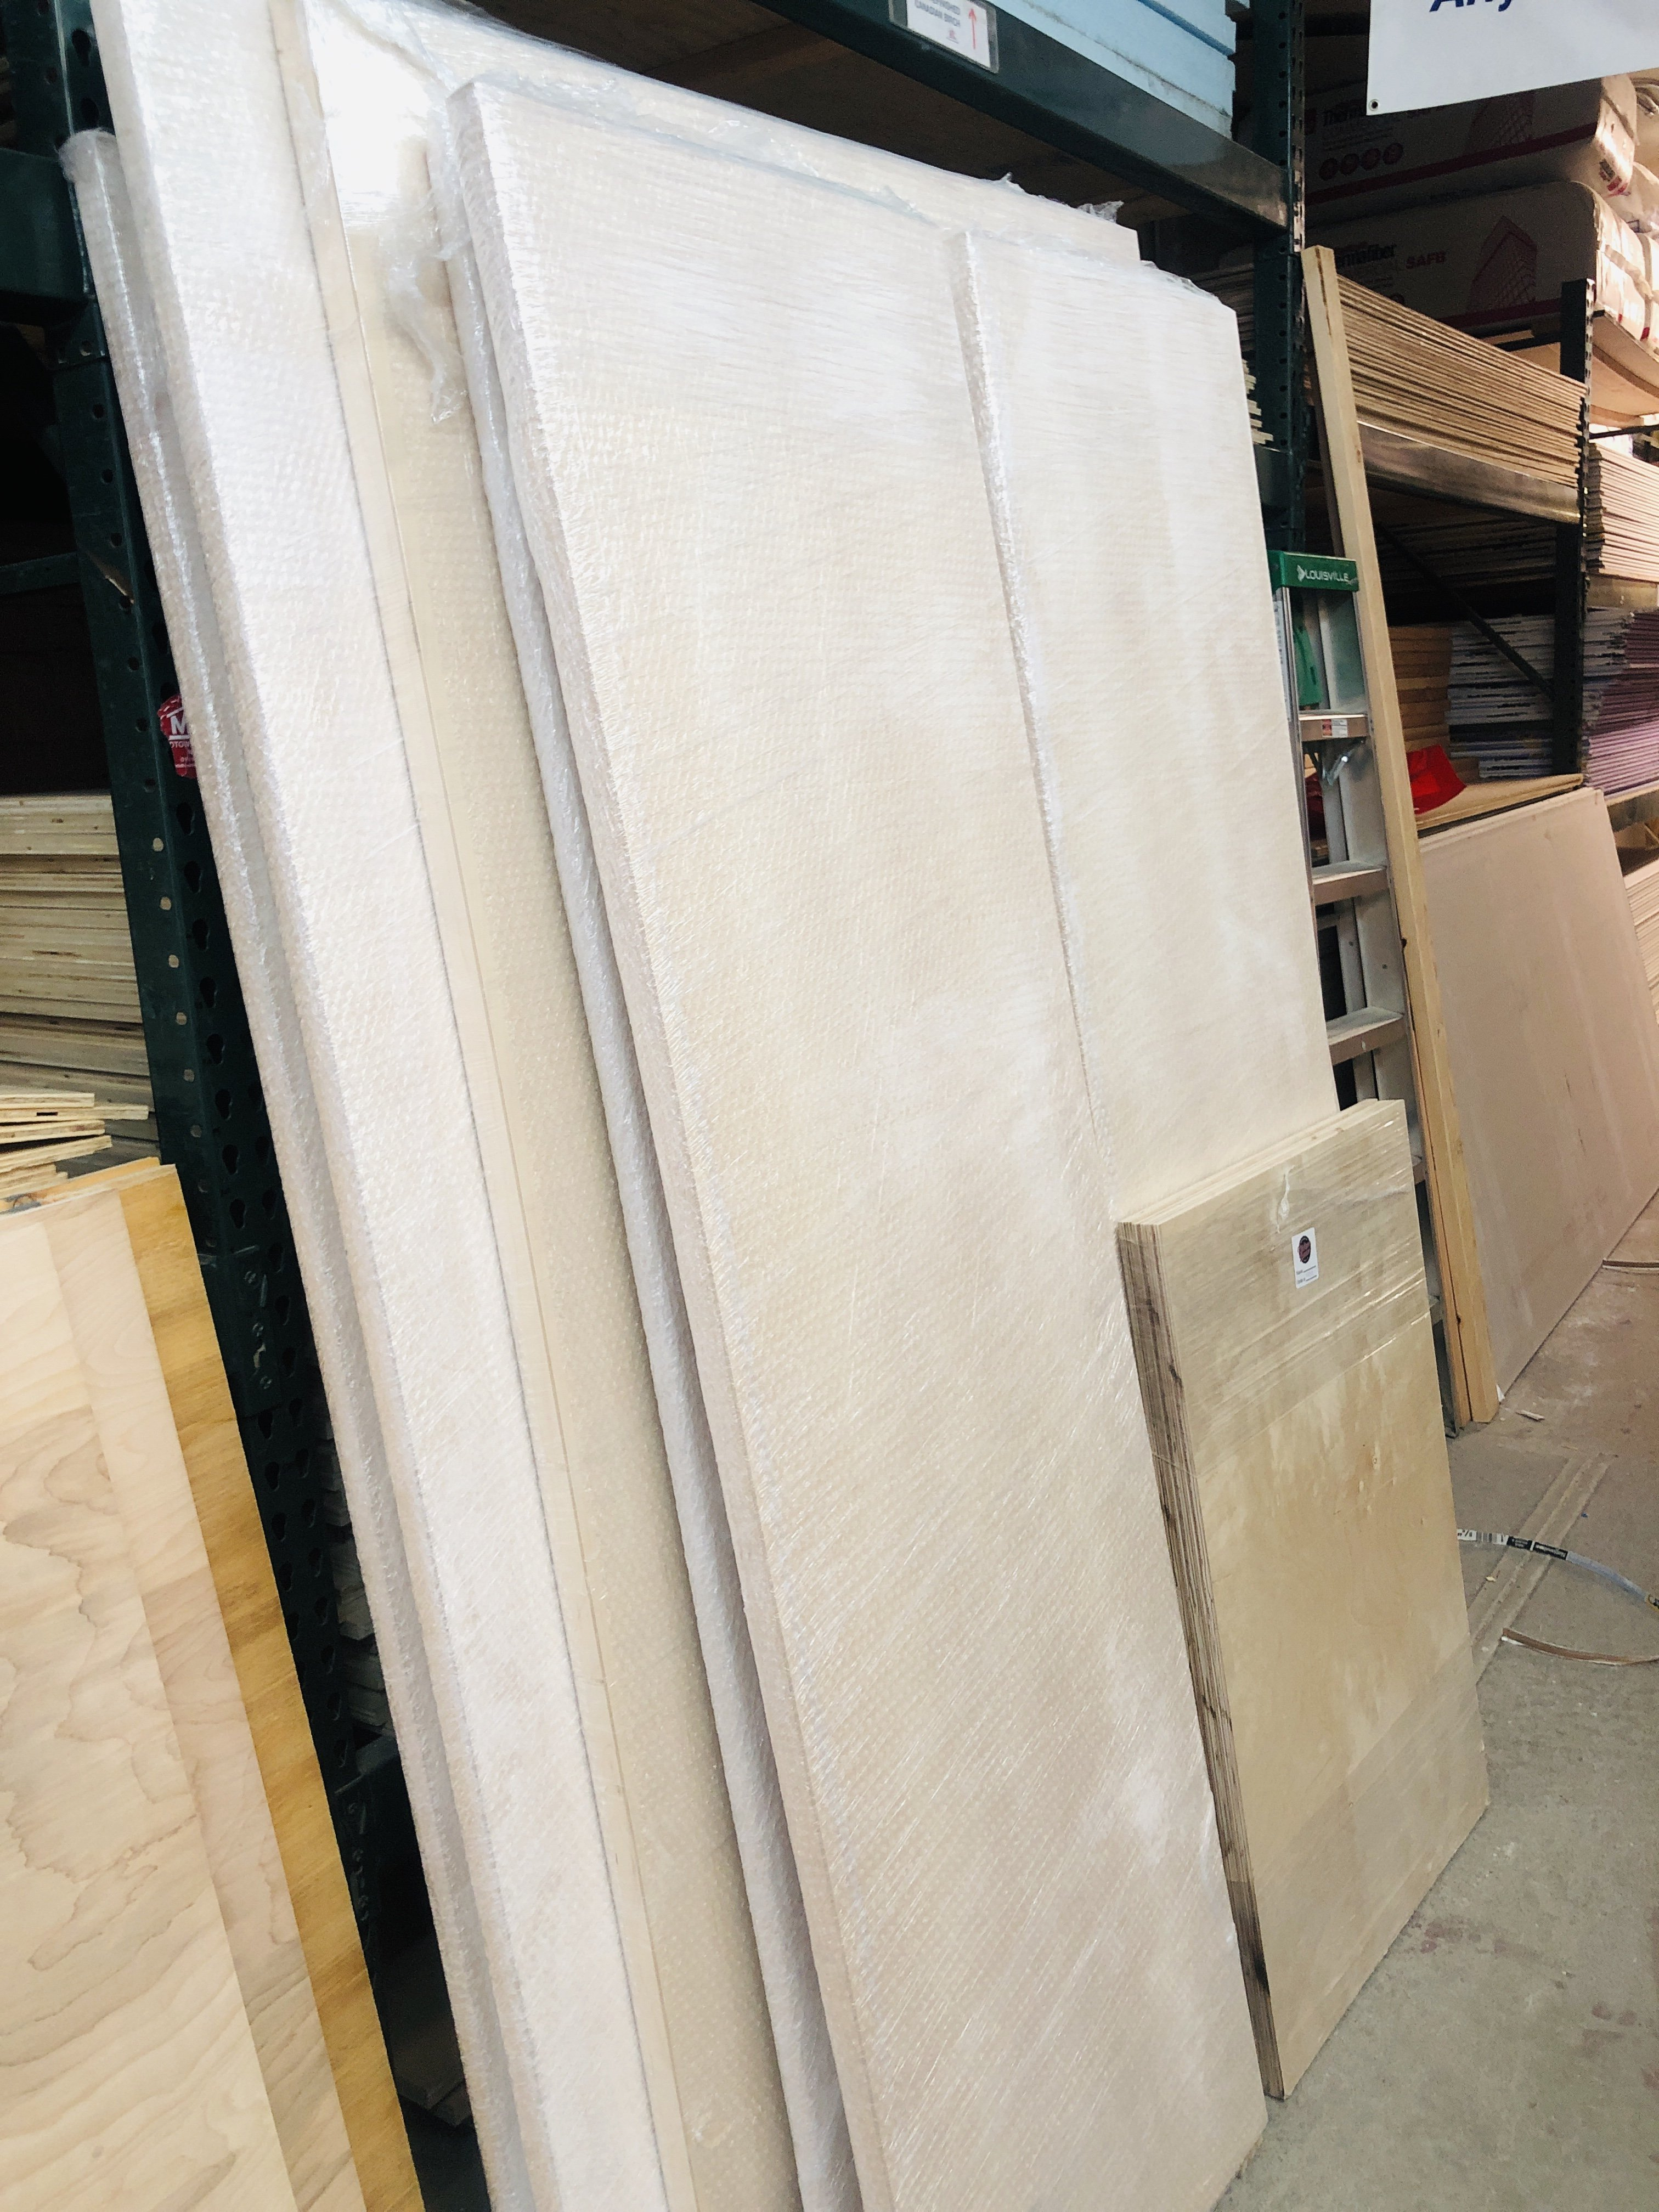 Pre-Hung Doors vs. Slab Only Doors - What's the difference? 4